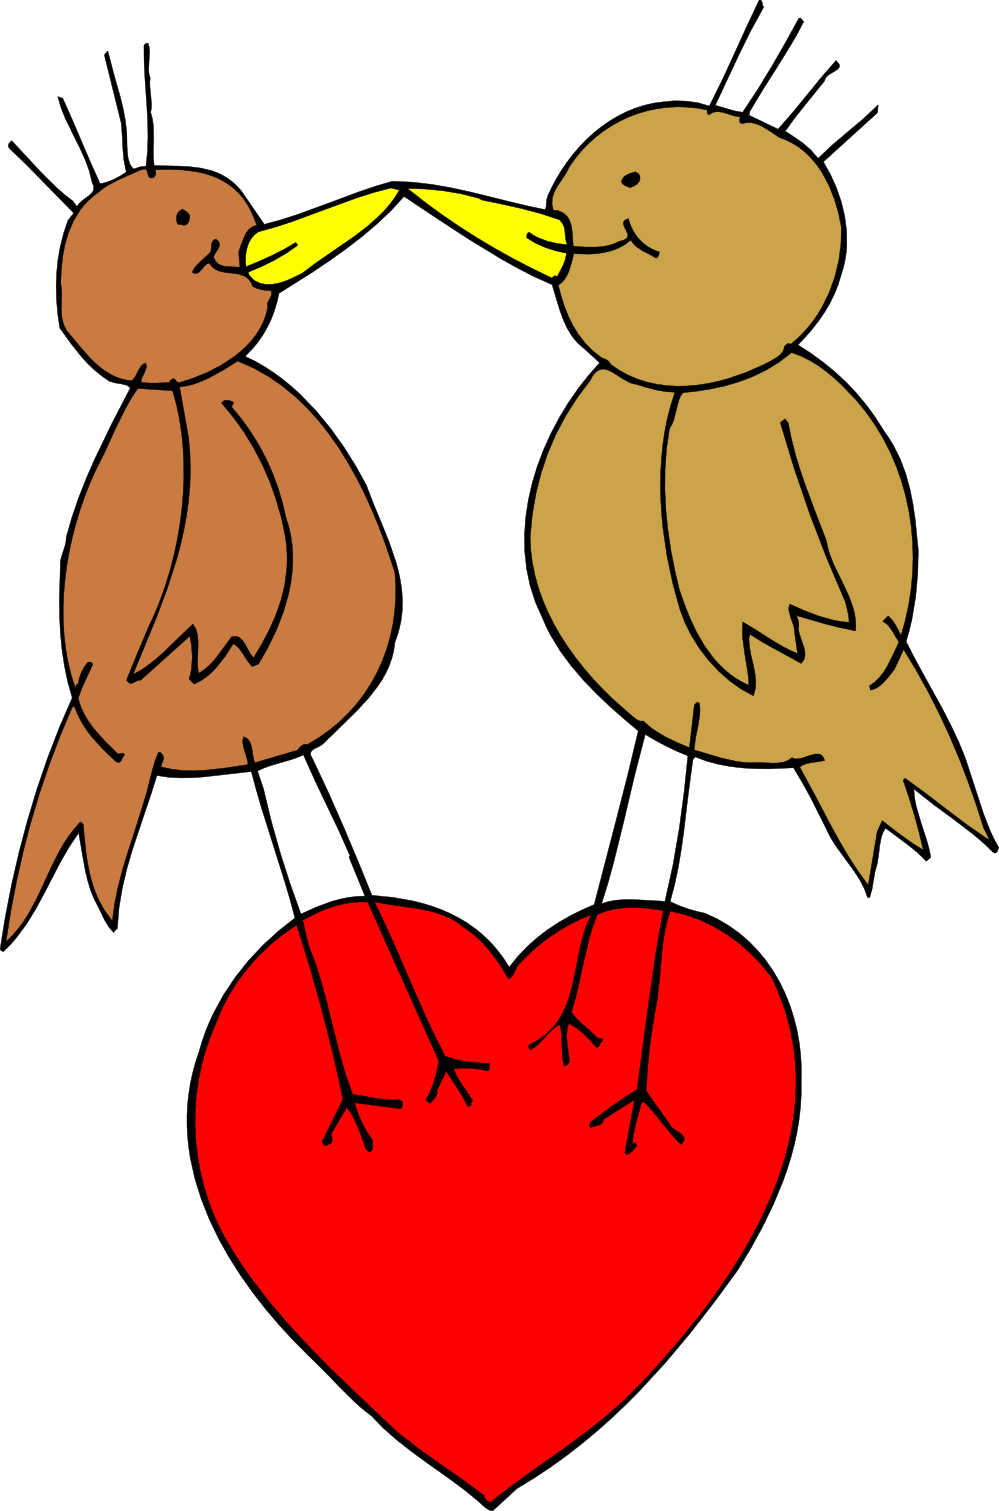 Love Birds Art Coloring Book Colouring Sheet Page intelligentsia.